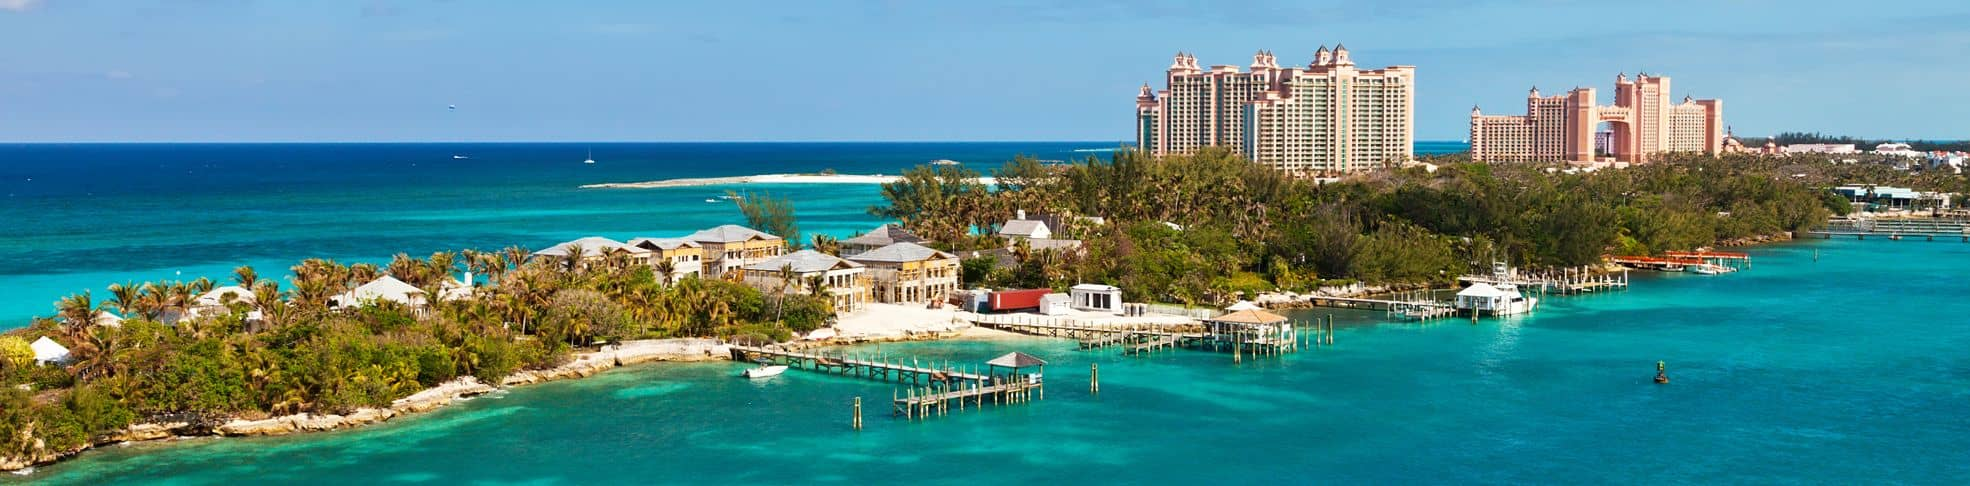 Cheap Bahamas Holidays 2019 2020 From 49 Deposit Only